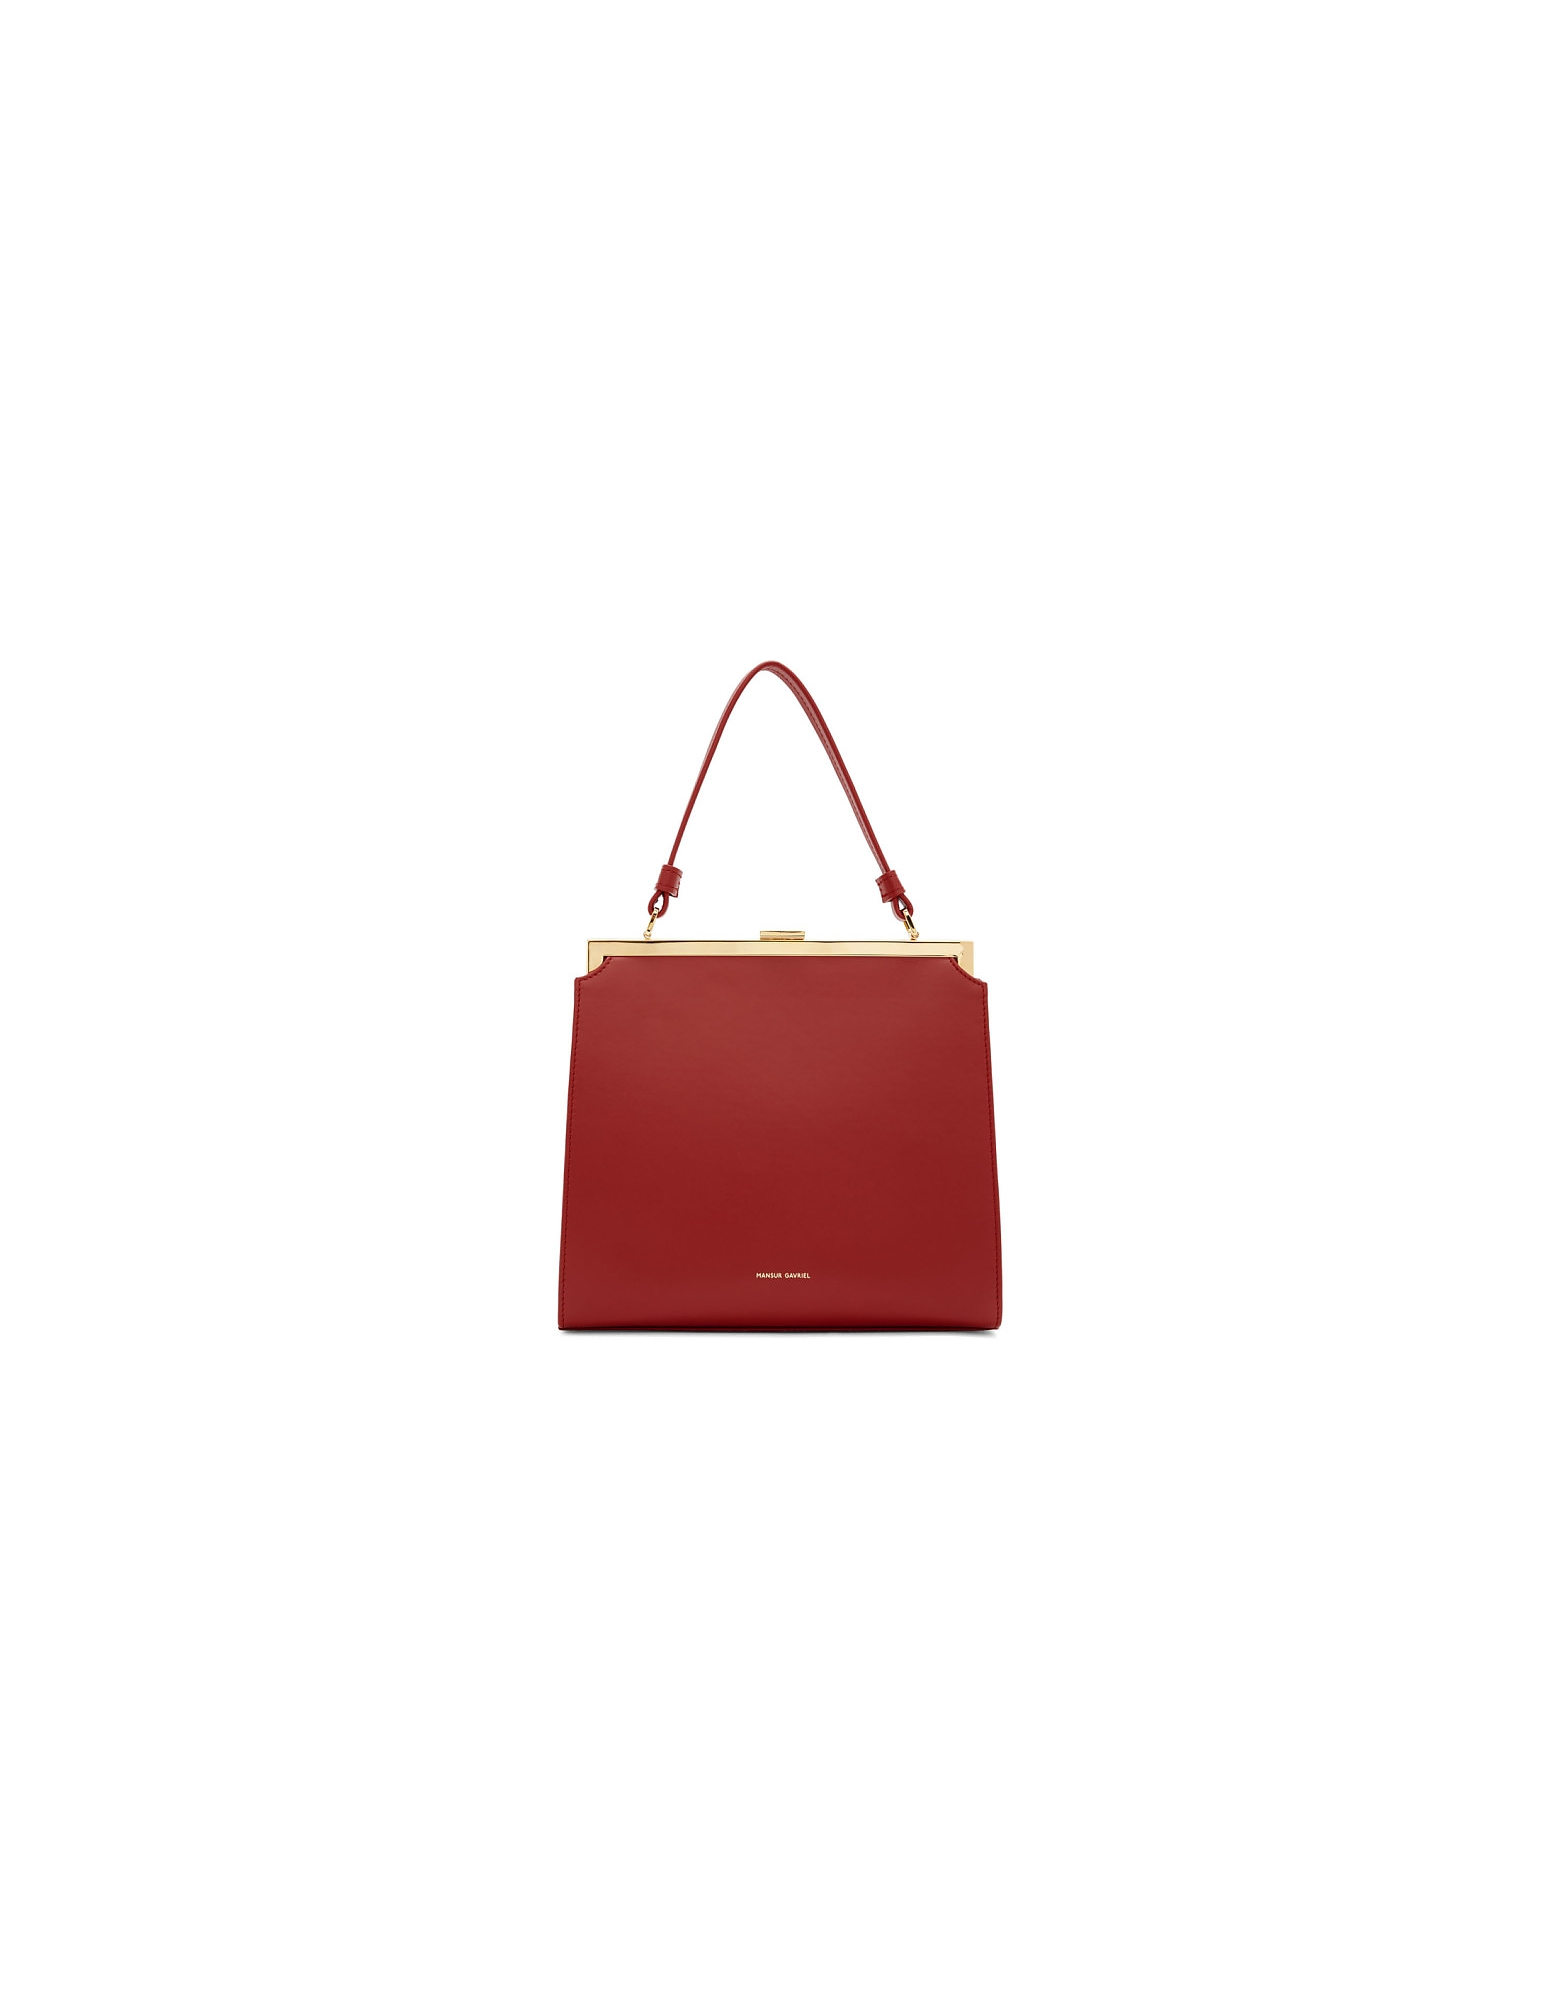 Mansur Gavriel Designer Handbags, Red Elegant Bag